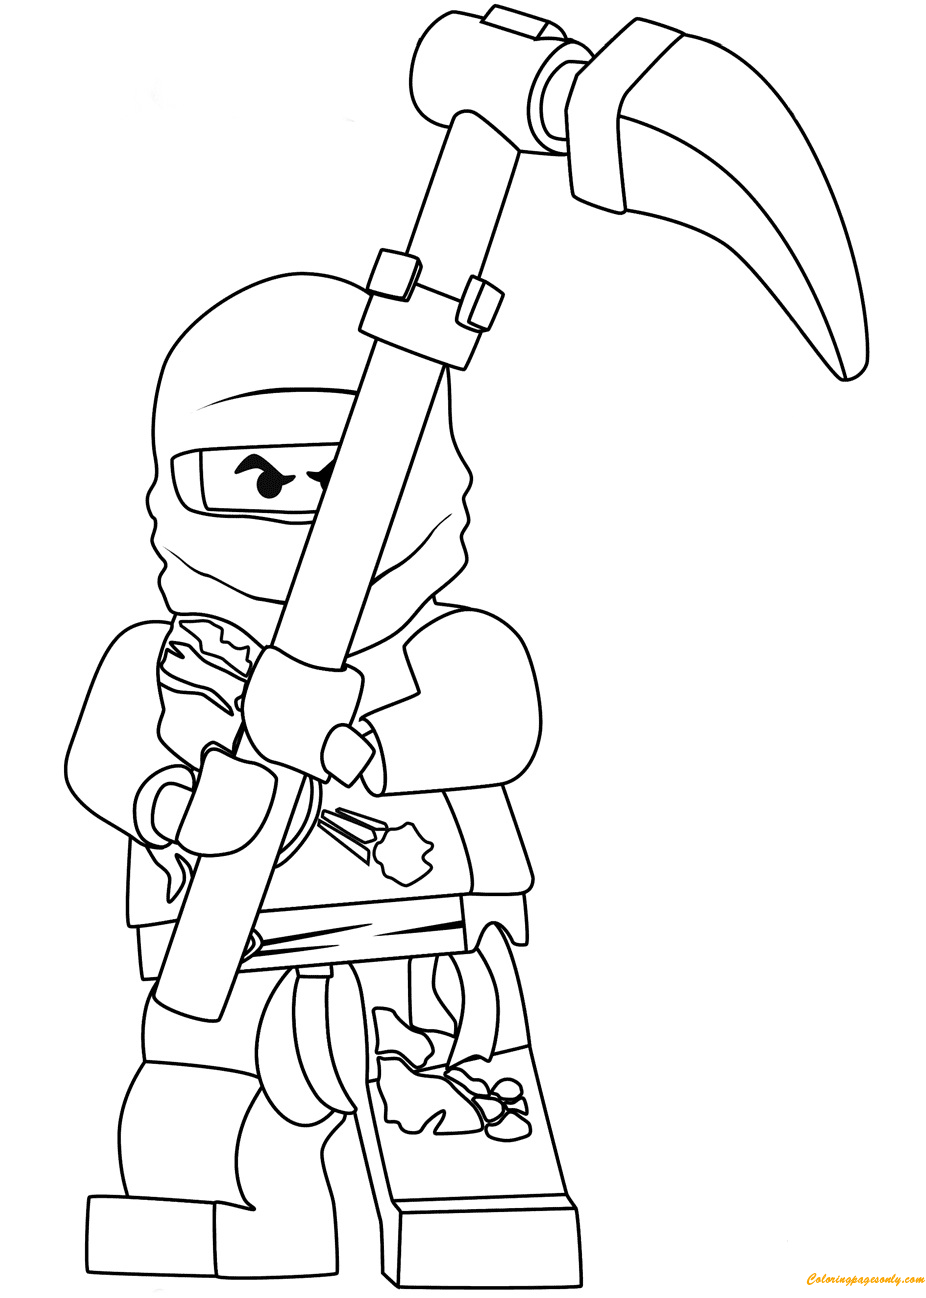 lego ninjago cole coloring page free coloring pages